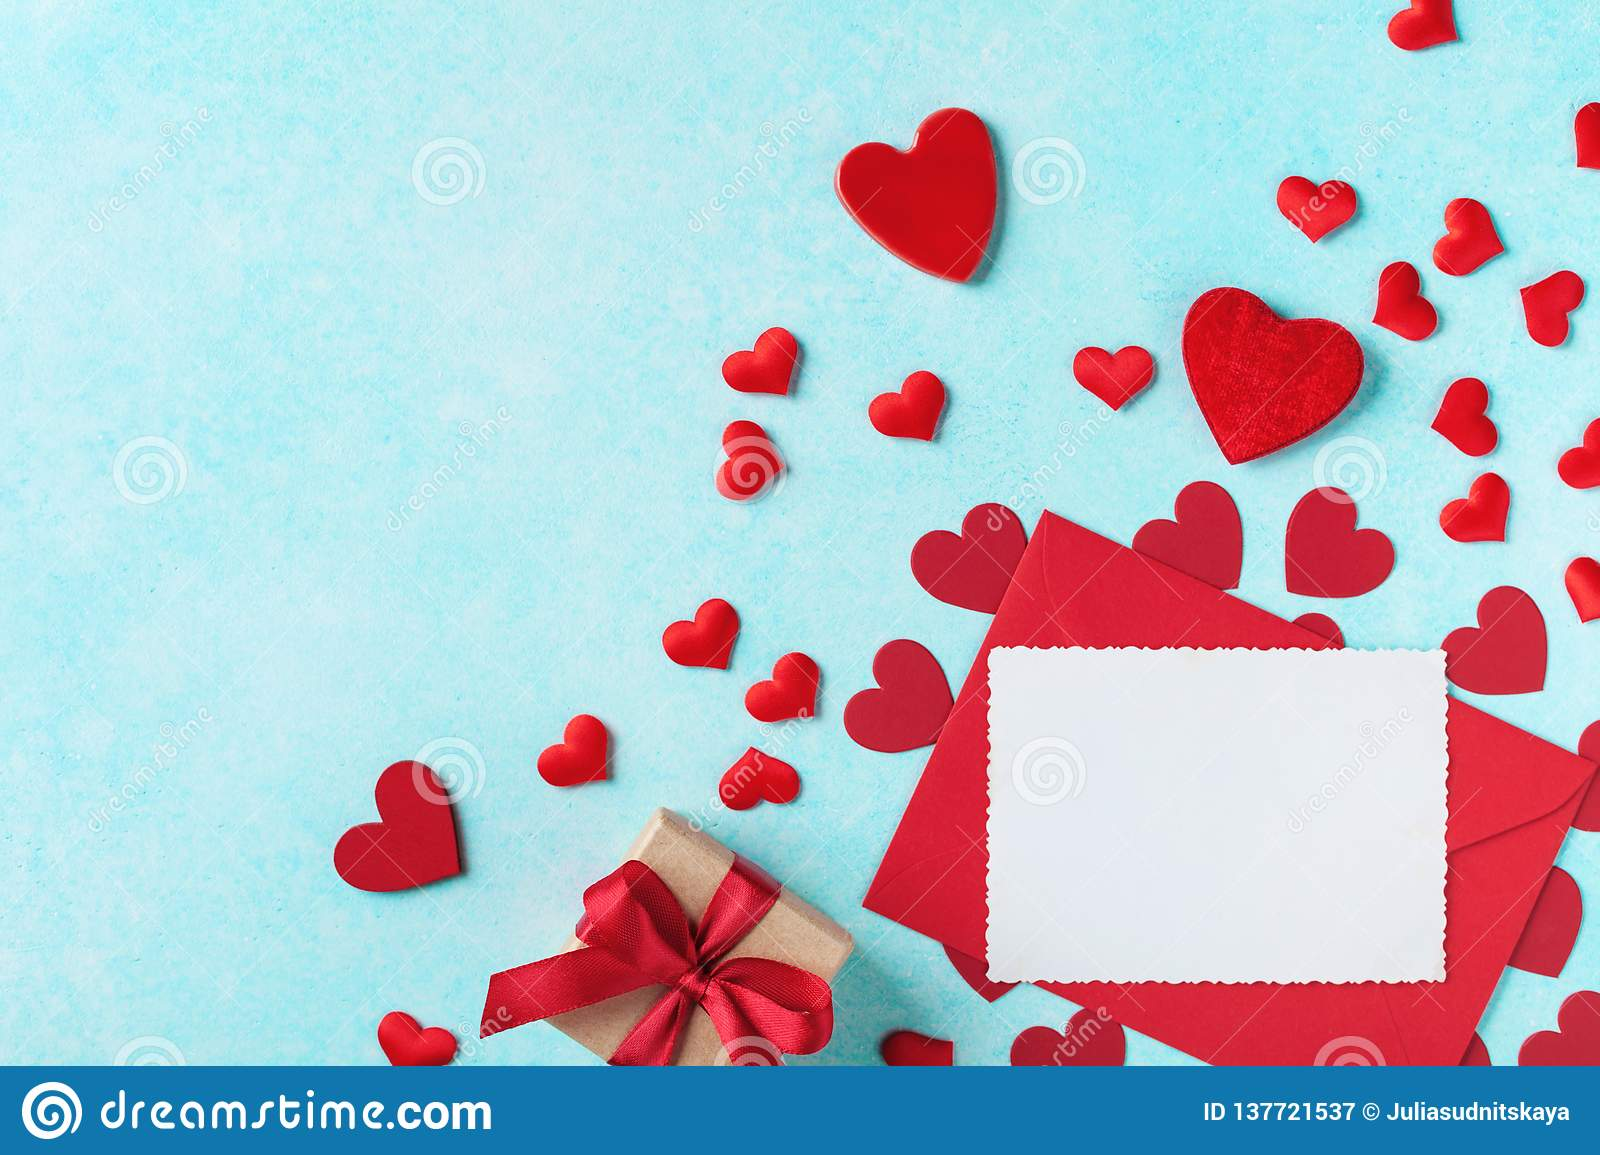 Valentines day background. Envelope, greeting card, gift box and red hearts for holiday message